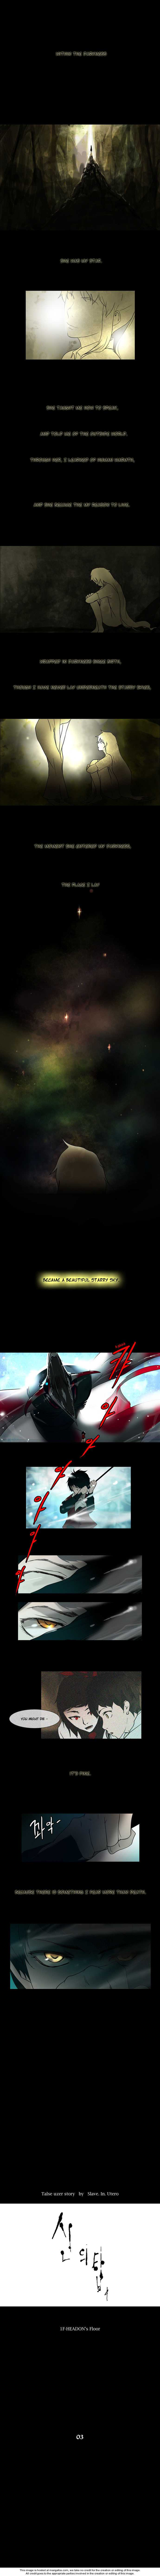 Tower of God 3 Page 2